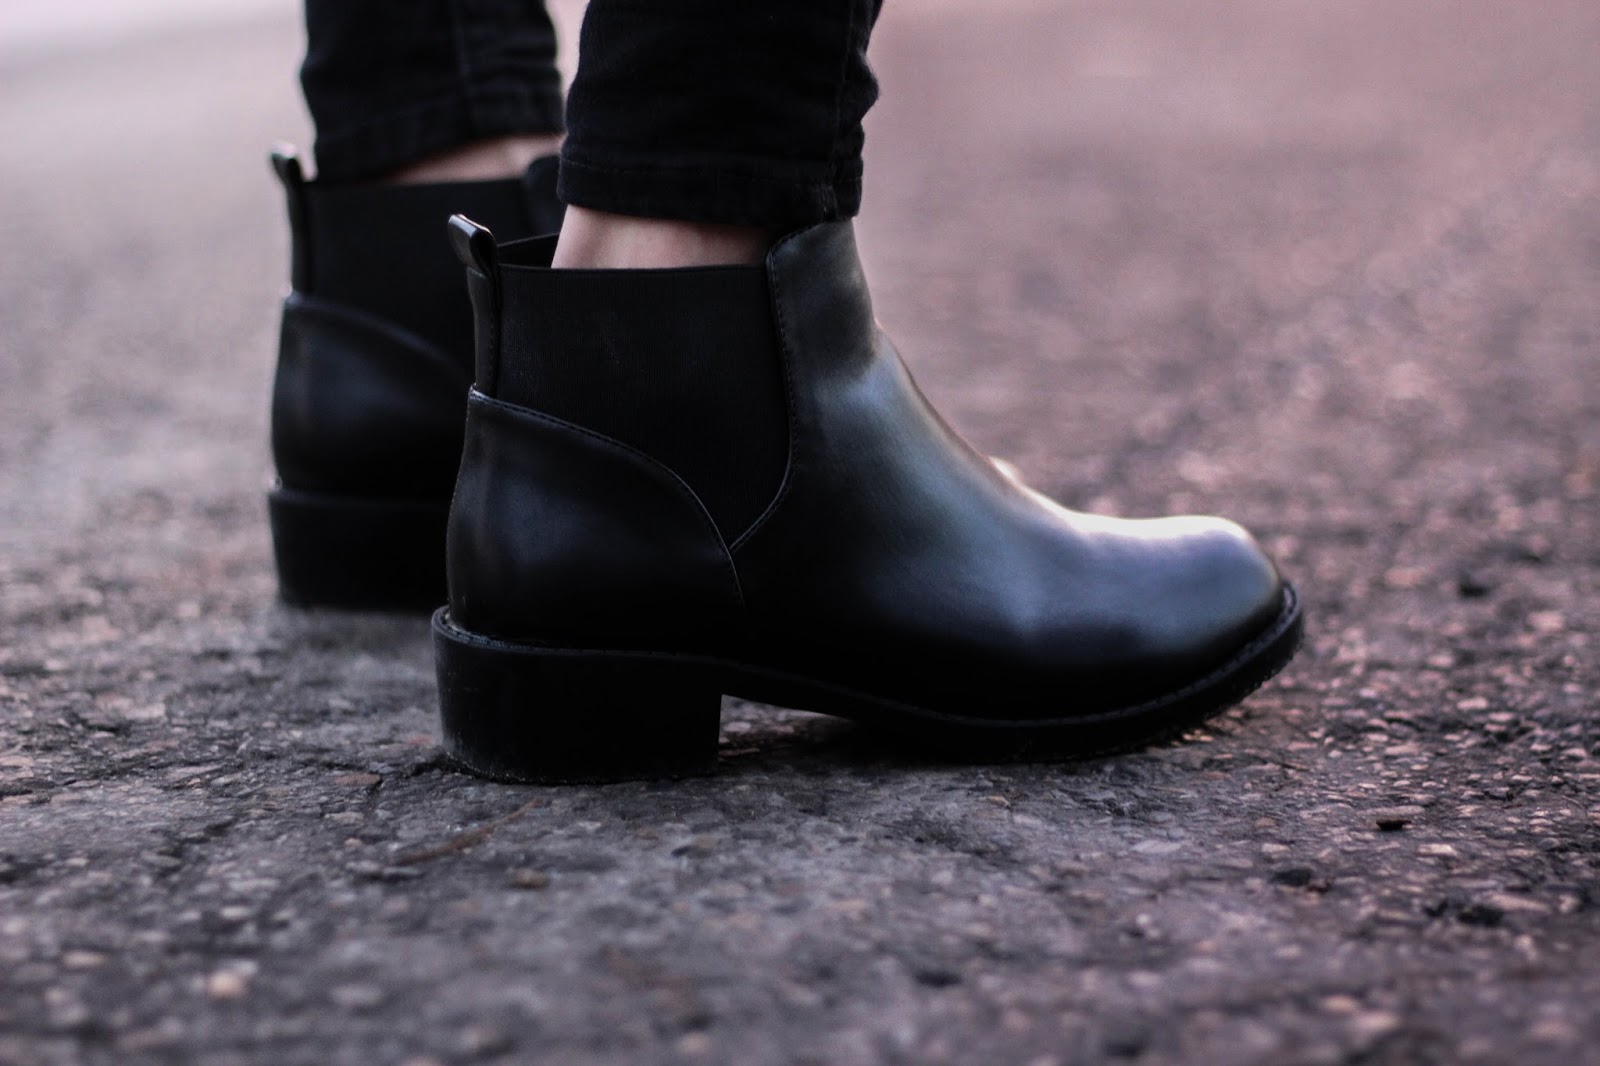 www.zaful.com/elastic-round-toe-pu-leather-ankle-boots-p_217103.html?lkid=20258